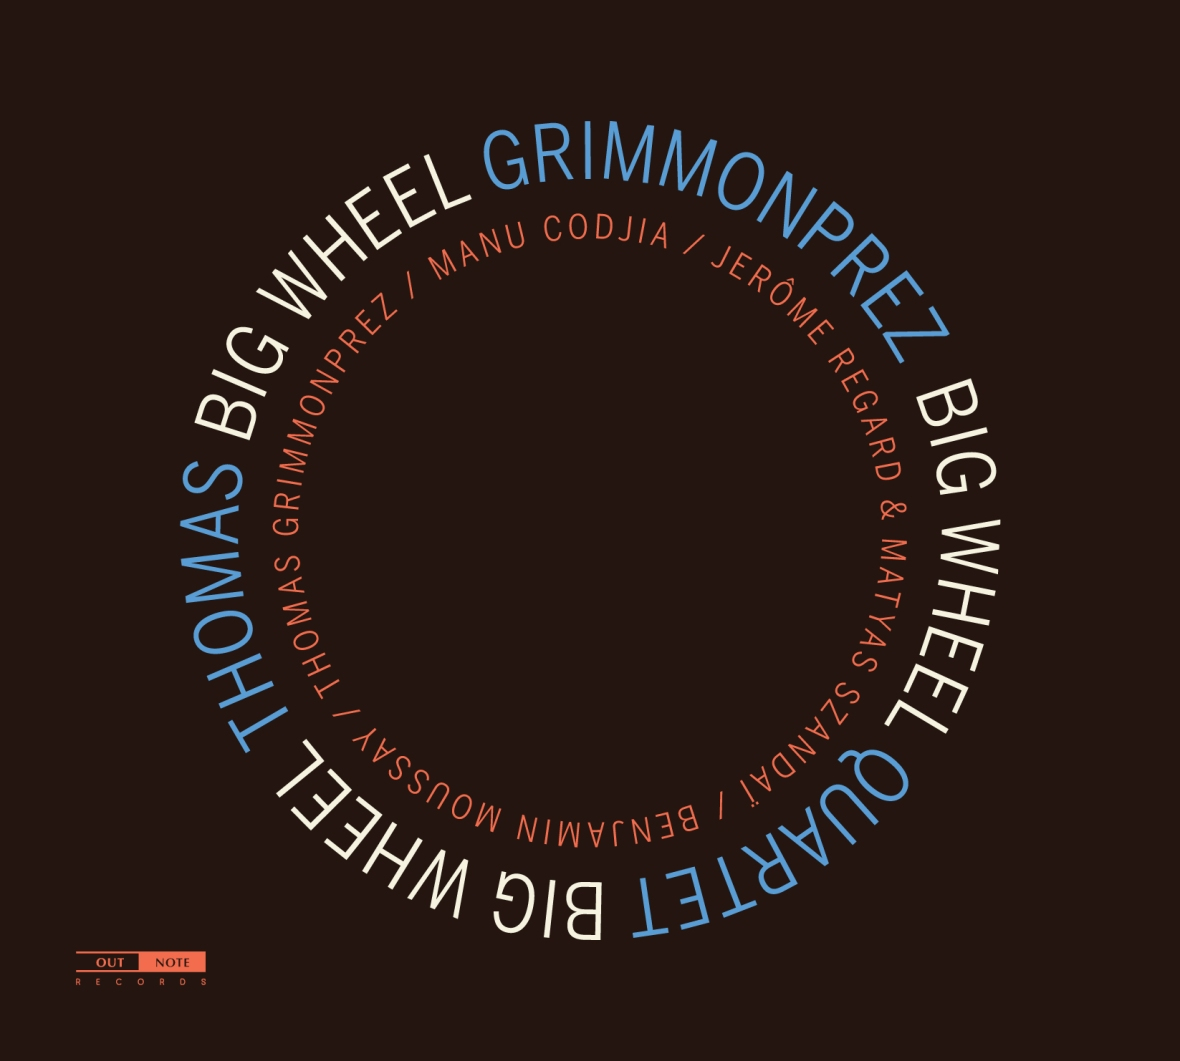 Thomas Grimmonprez Quartet - Big Wheel